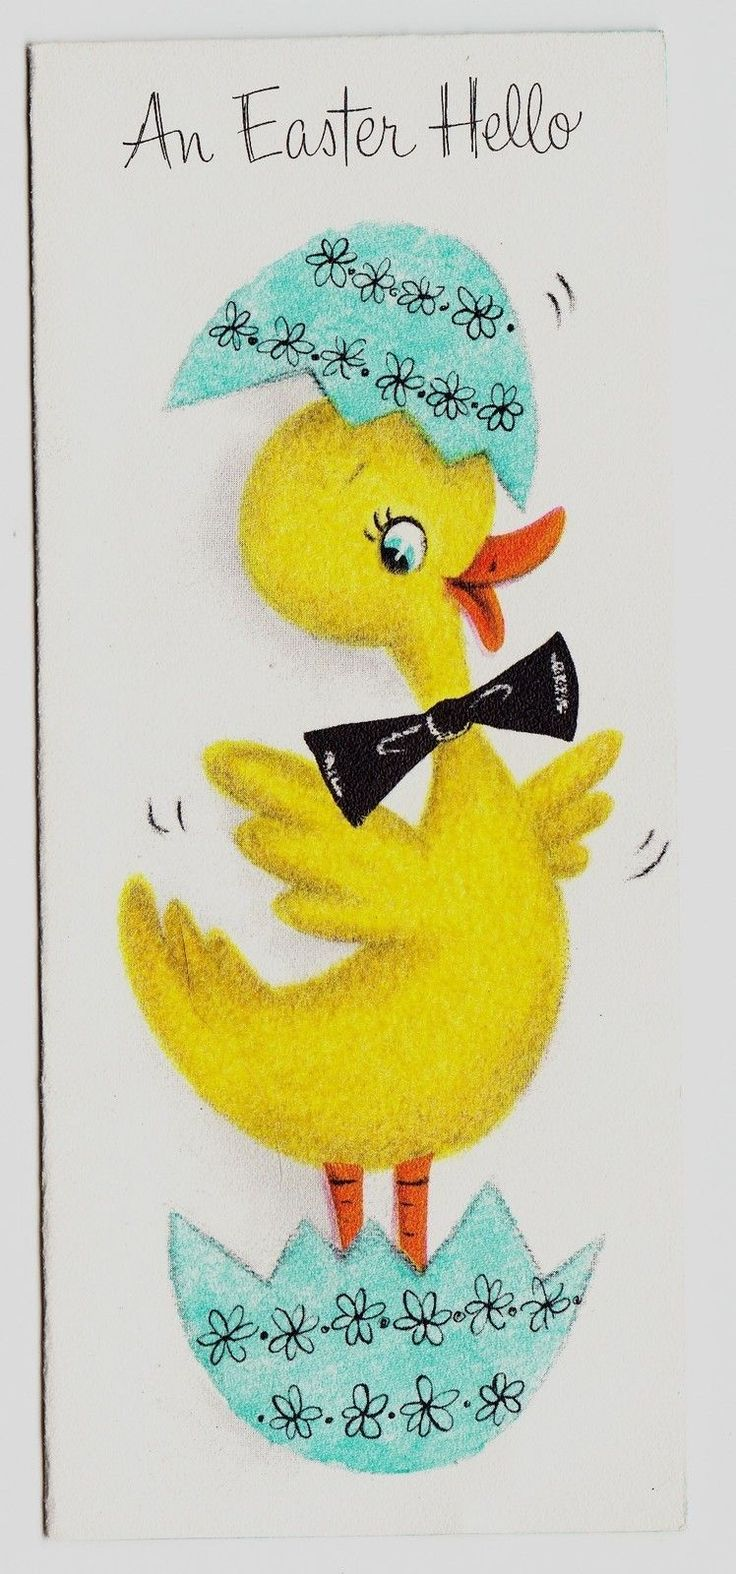 Flocked Yellow Easter Duck Breaking Out of Egg Vintage Hallmark Greeting Card   eBay